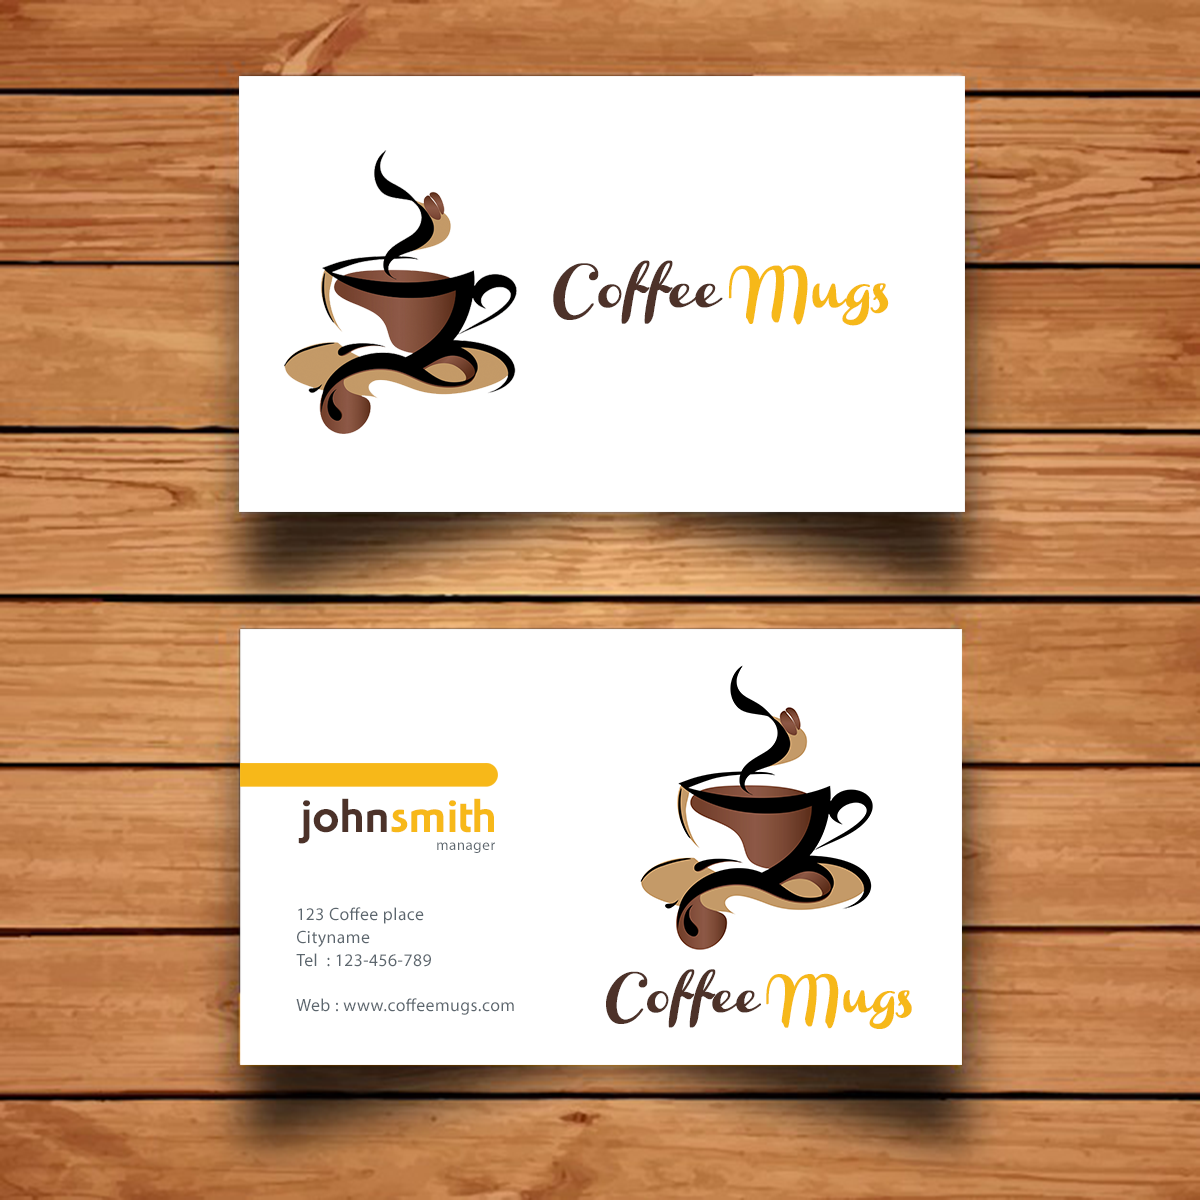 Coffee Mugs Visiting Card Designs